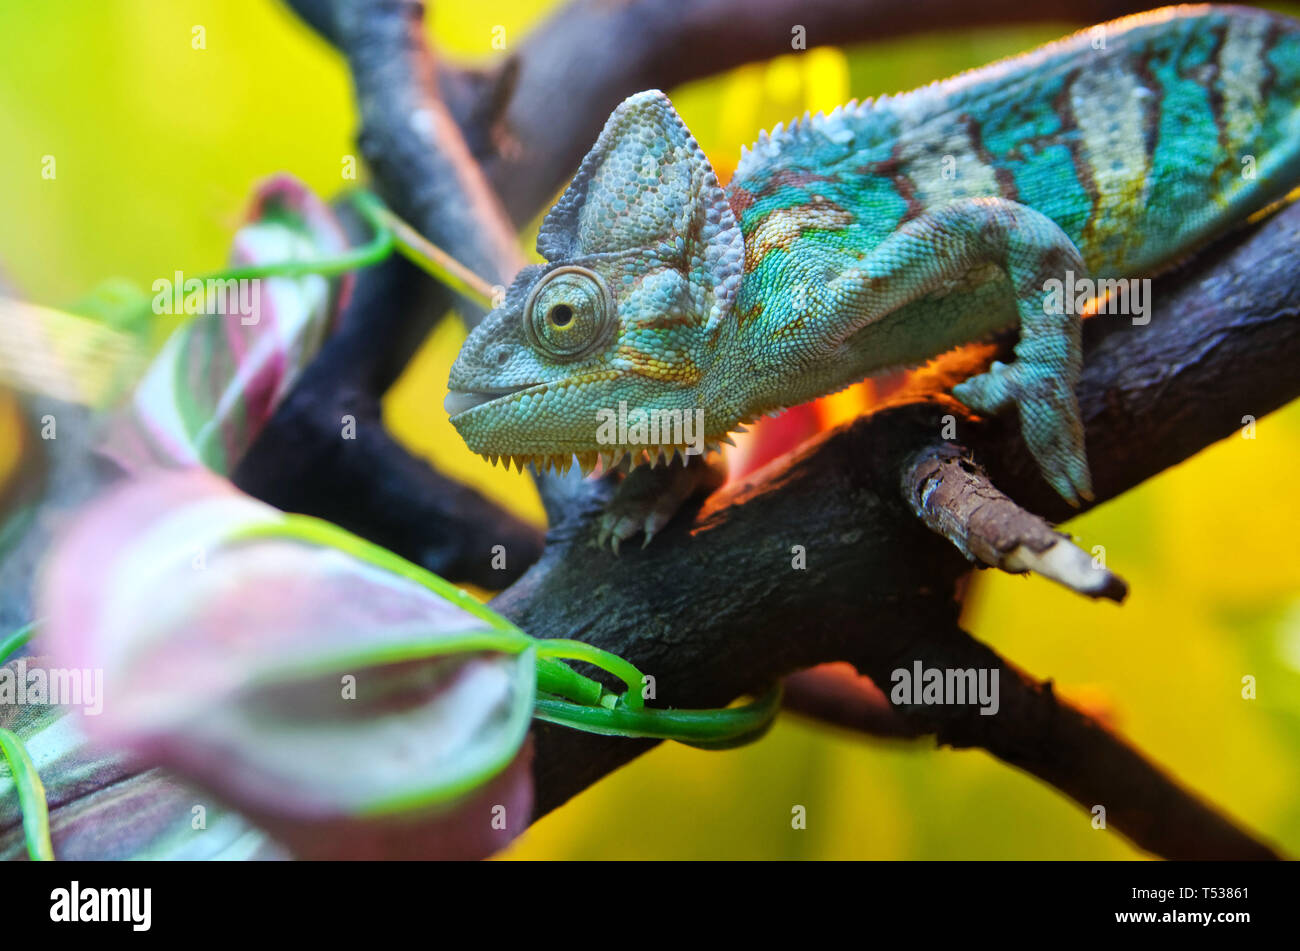 Chameleon sitting on a tree branch. Mimicry under a colorful environment. Reptile, lizard. - Stock Image